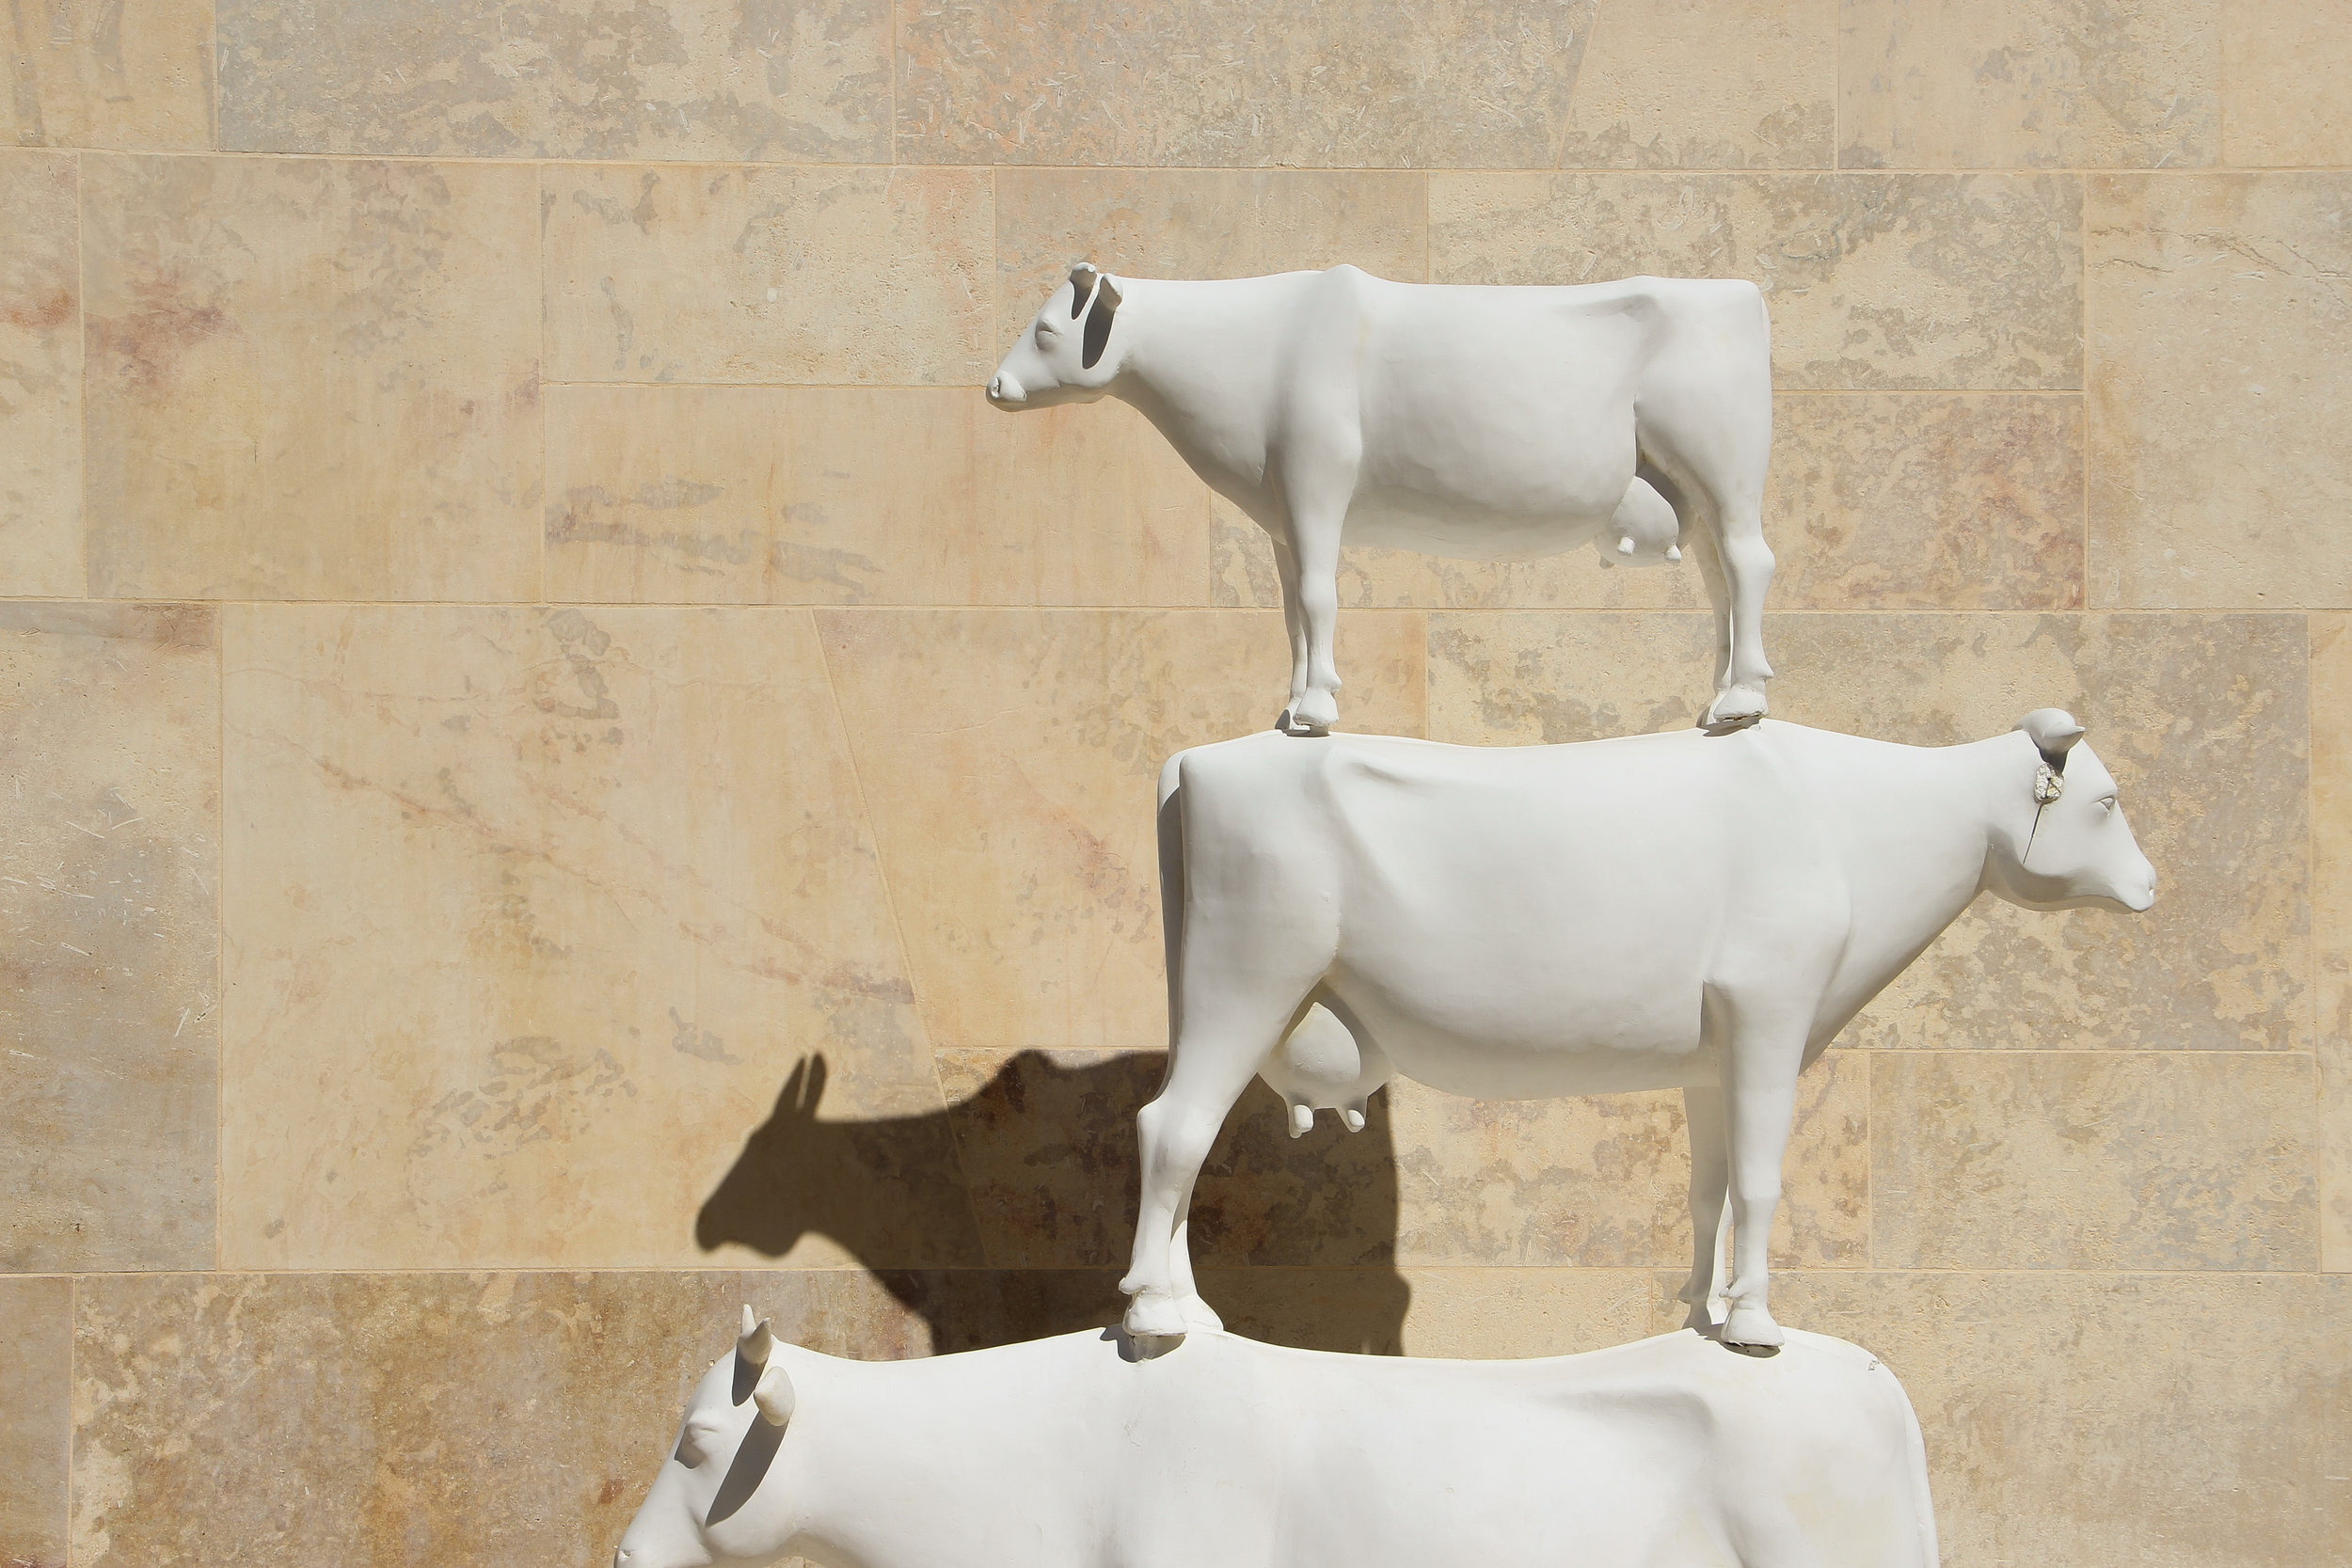 Friends with Vegans A sculpture of three cows | Public Art Installation | Old Town of Valletta | - Thinking about appreciation for quality in Malta | Malta, Europe | DoLessGetMoreDone.com | - Canon Minimal Travel Documentary Photography - search for liveability | Sustainability